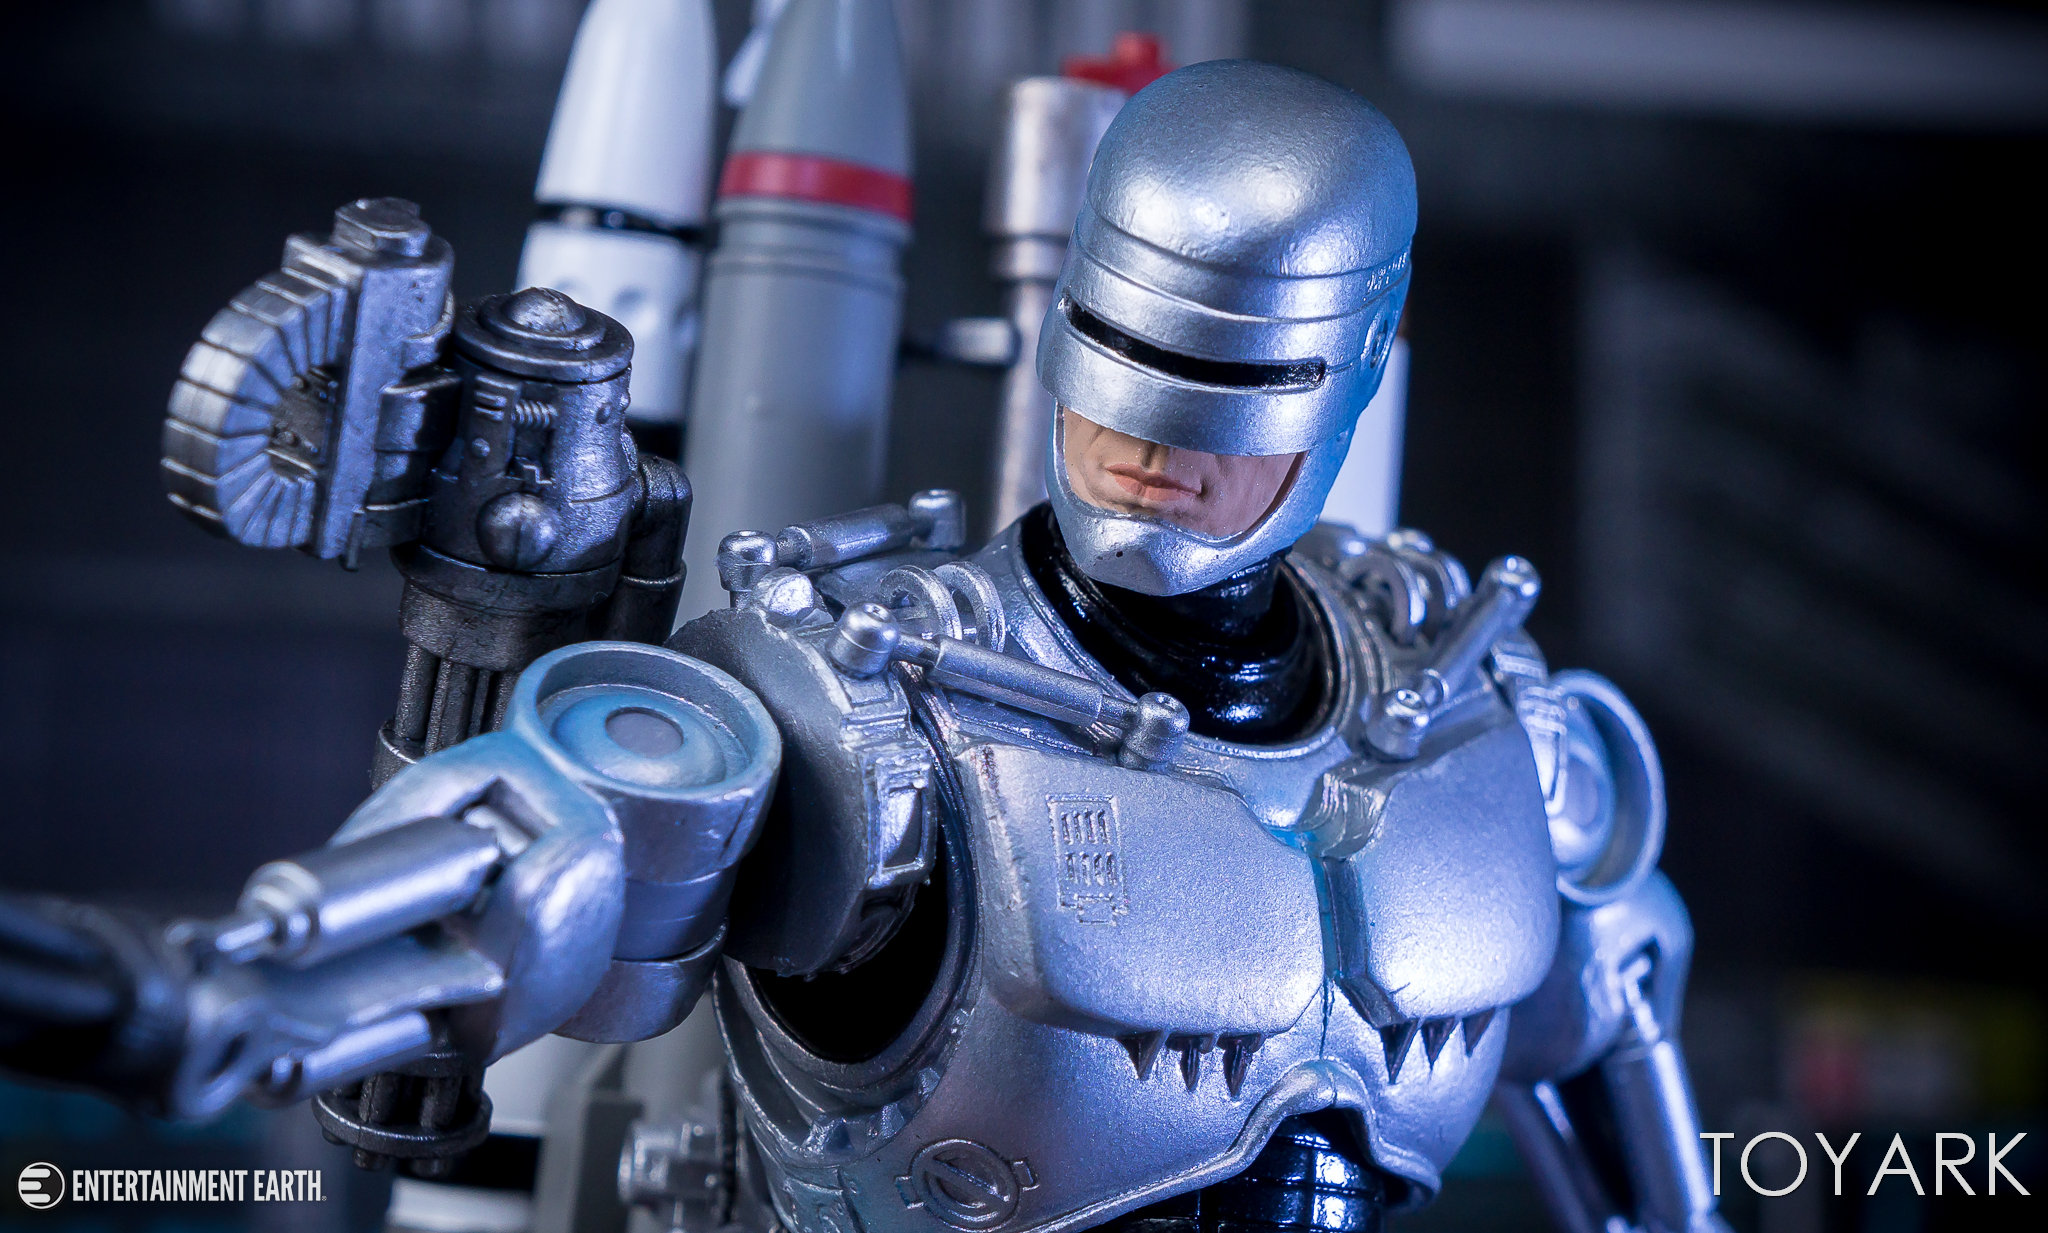 http://news.toyark.com/wp-content/uploads/sites/4/2018/02/NECA-Ult-Future-Robocop-014.jpg